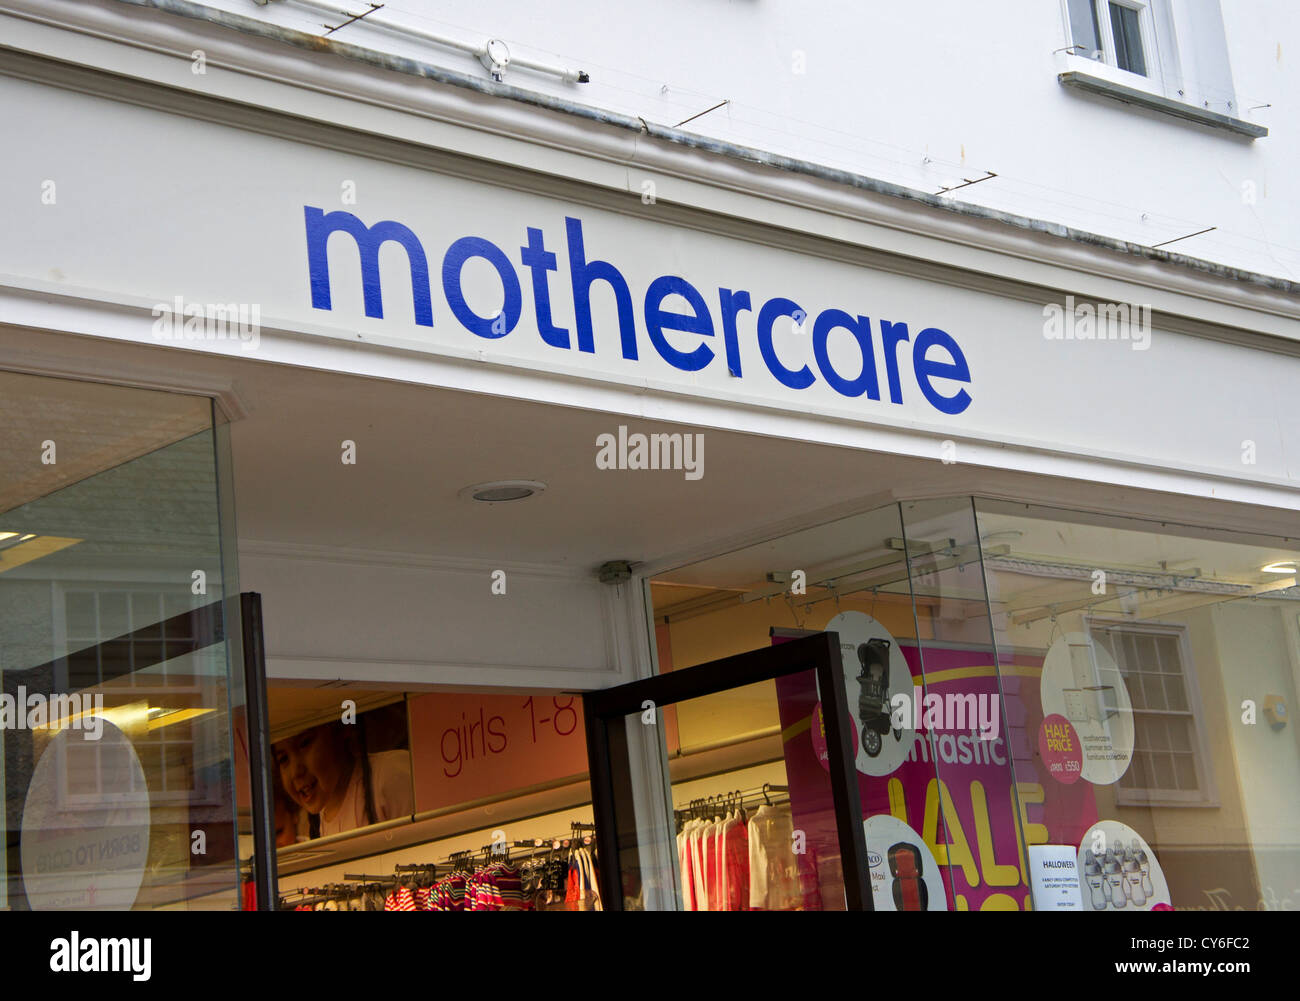 A Mothercare stroe in the UK Stock Photo